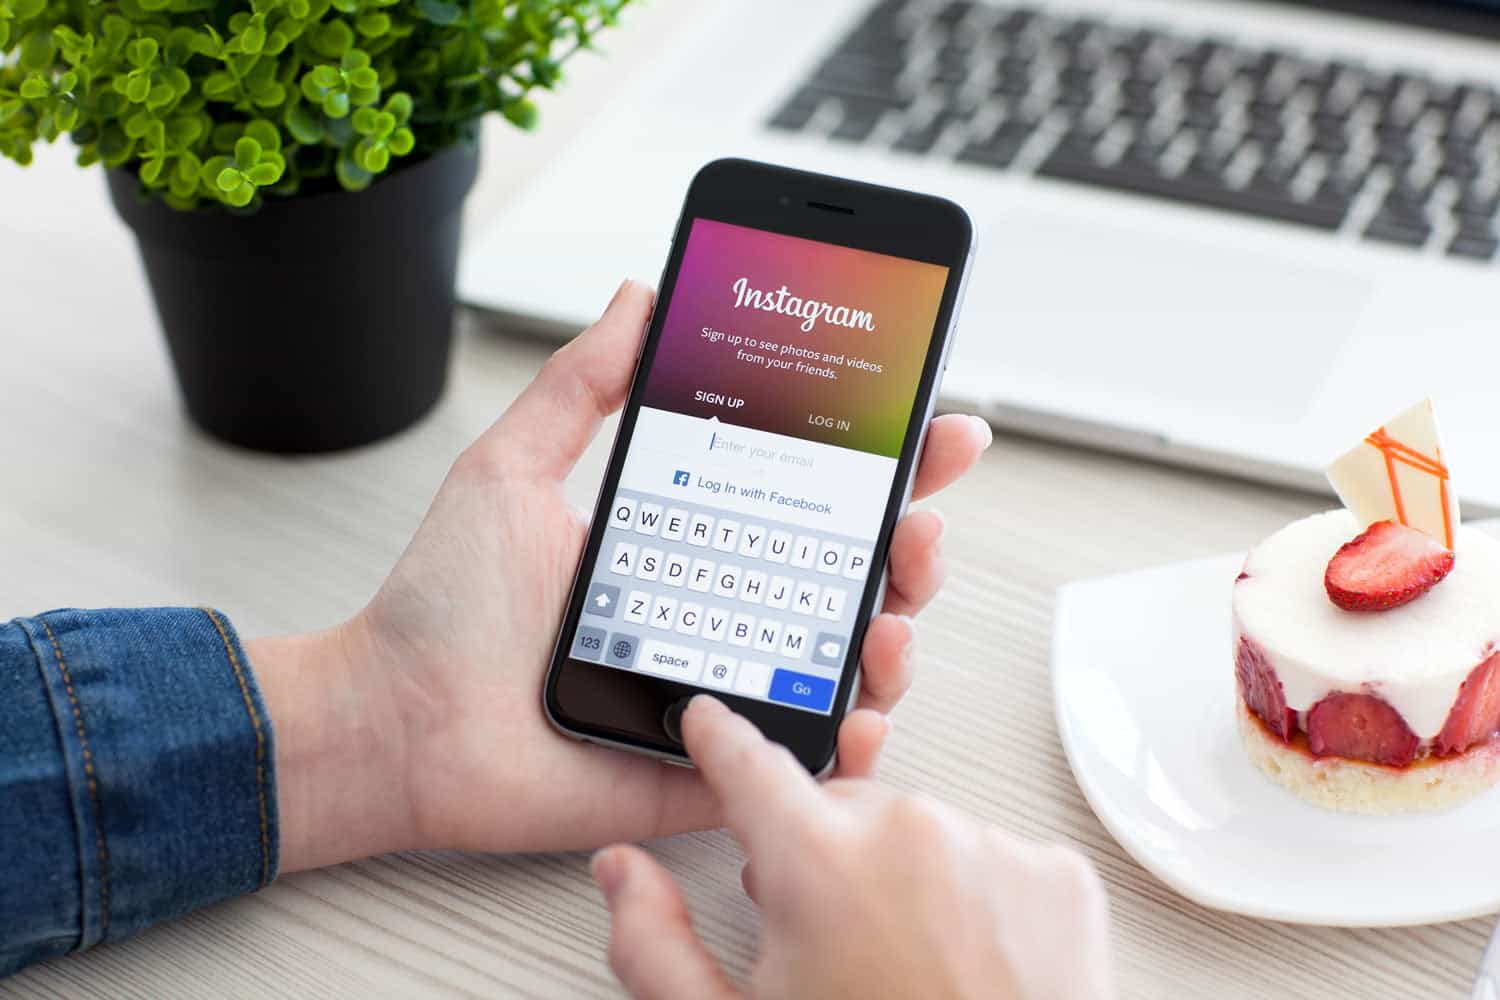 Instagram best free iPhone apps